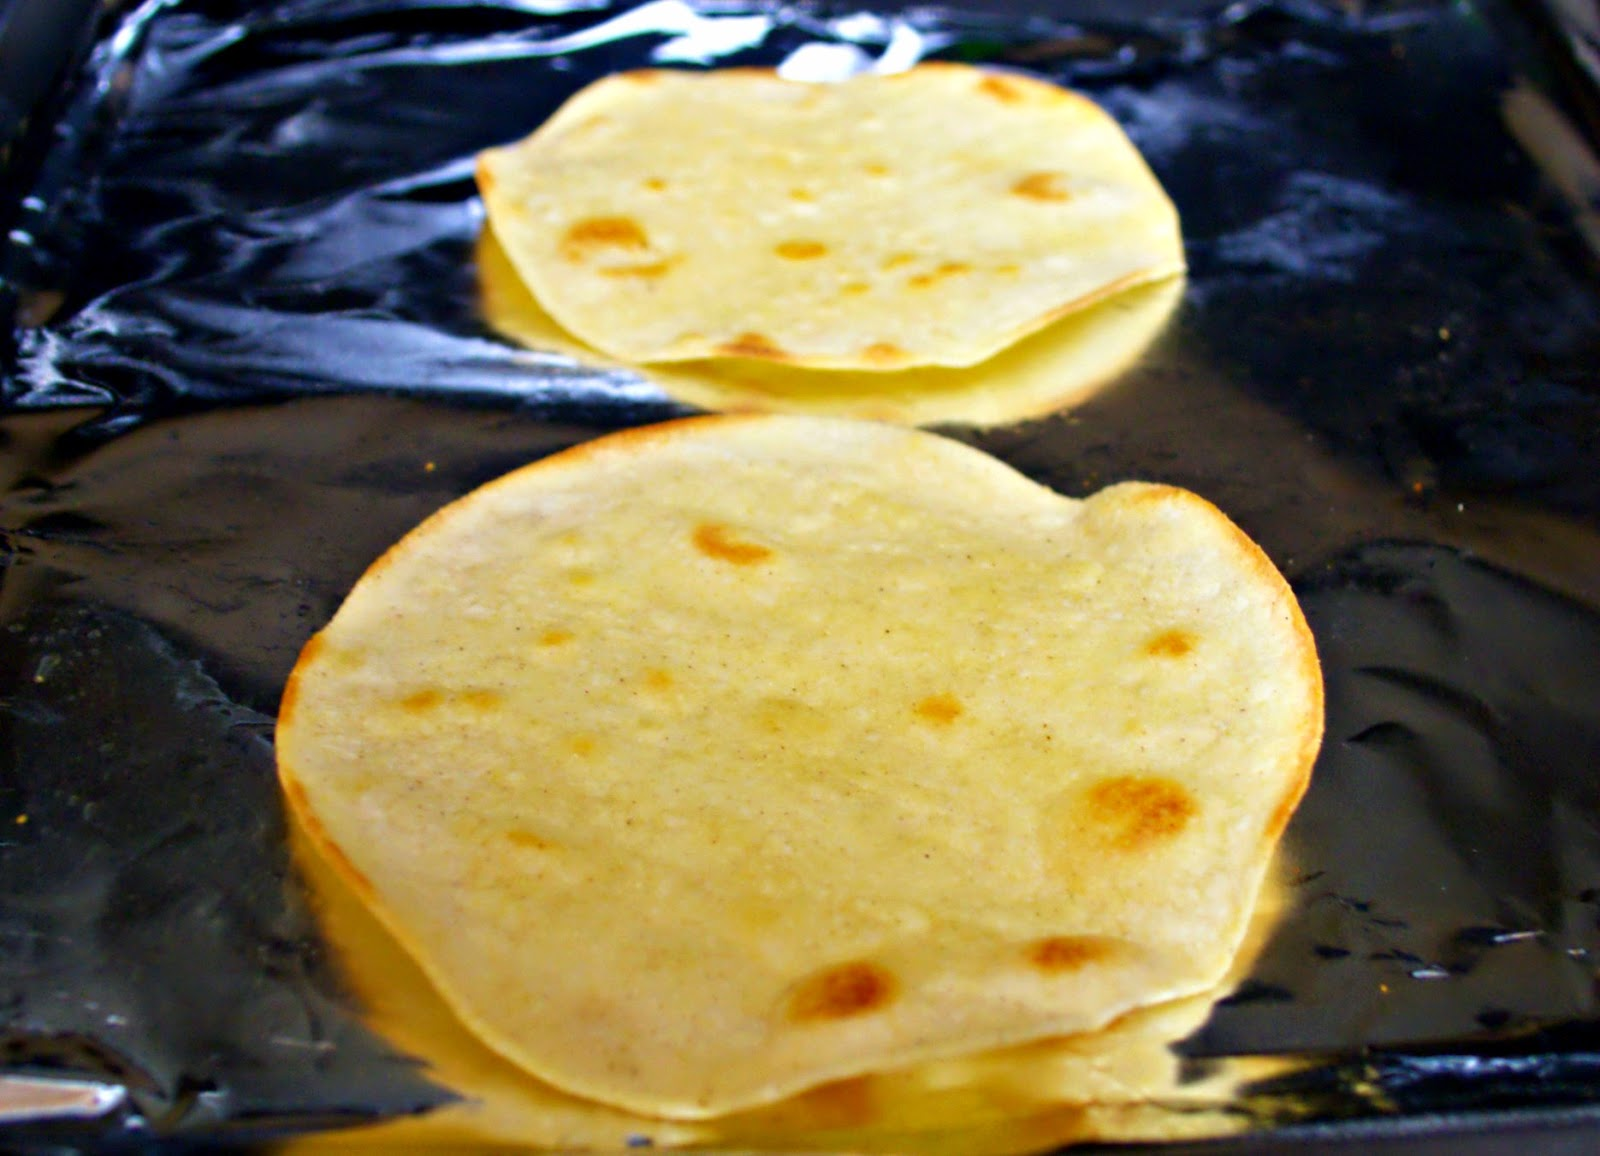 Baked Tortilla shells